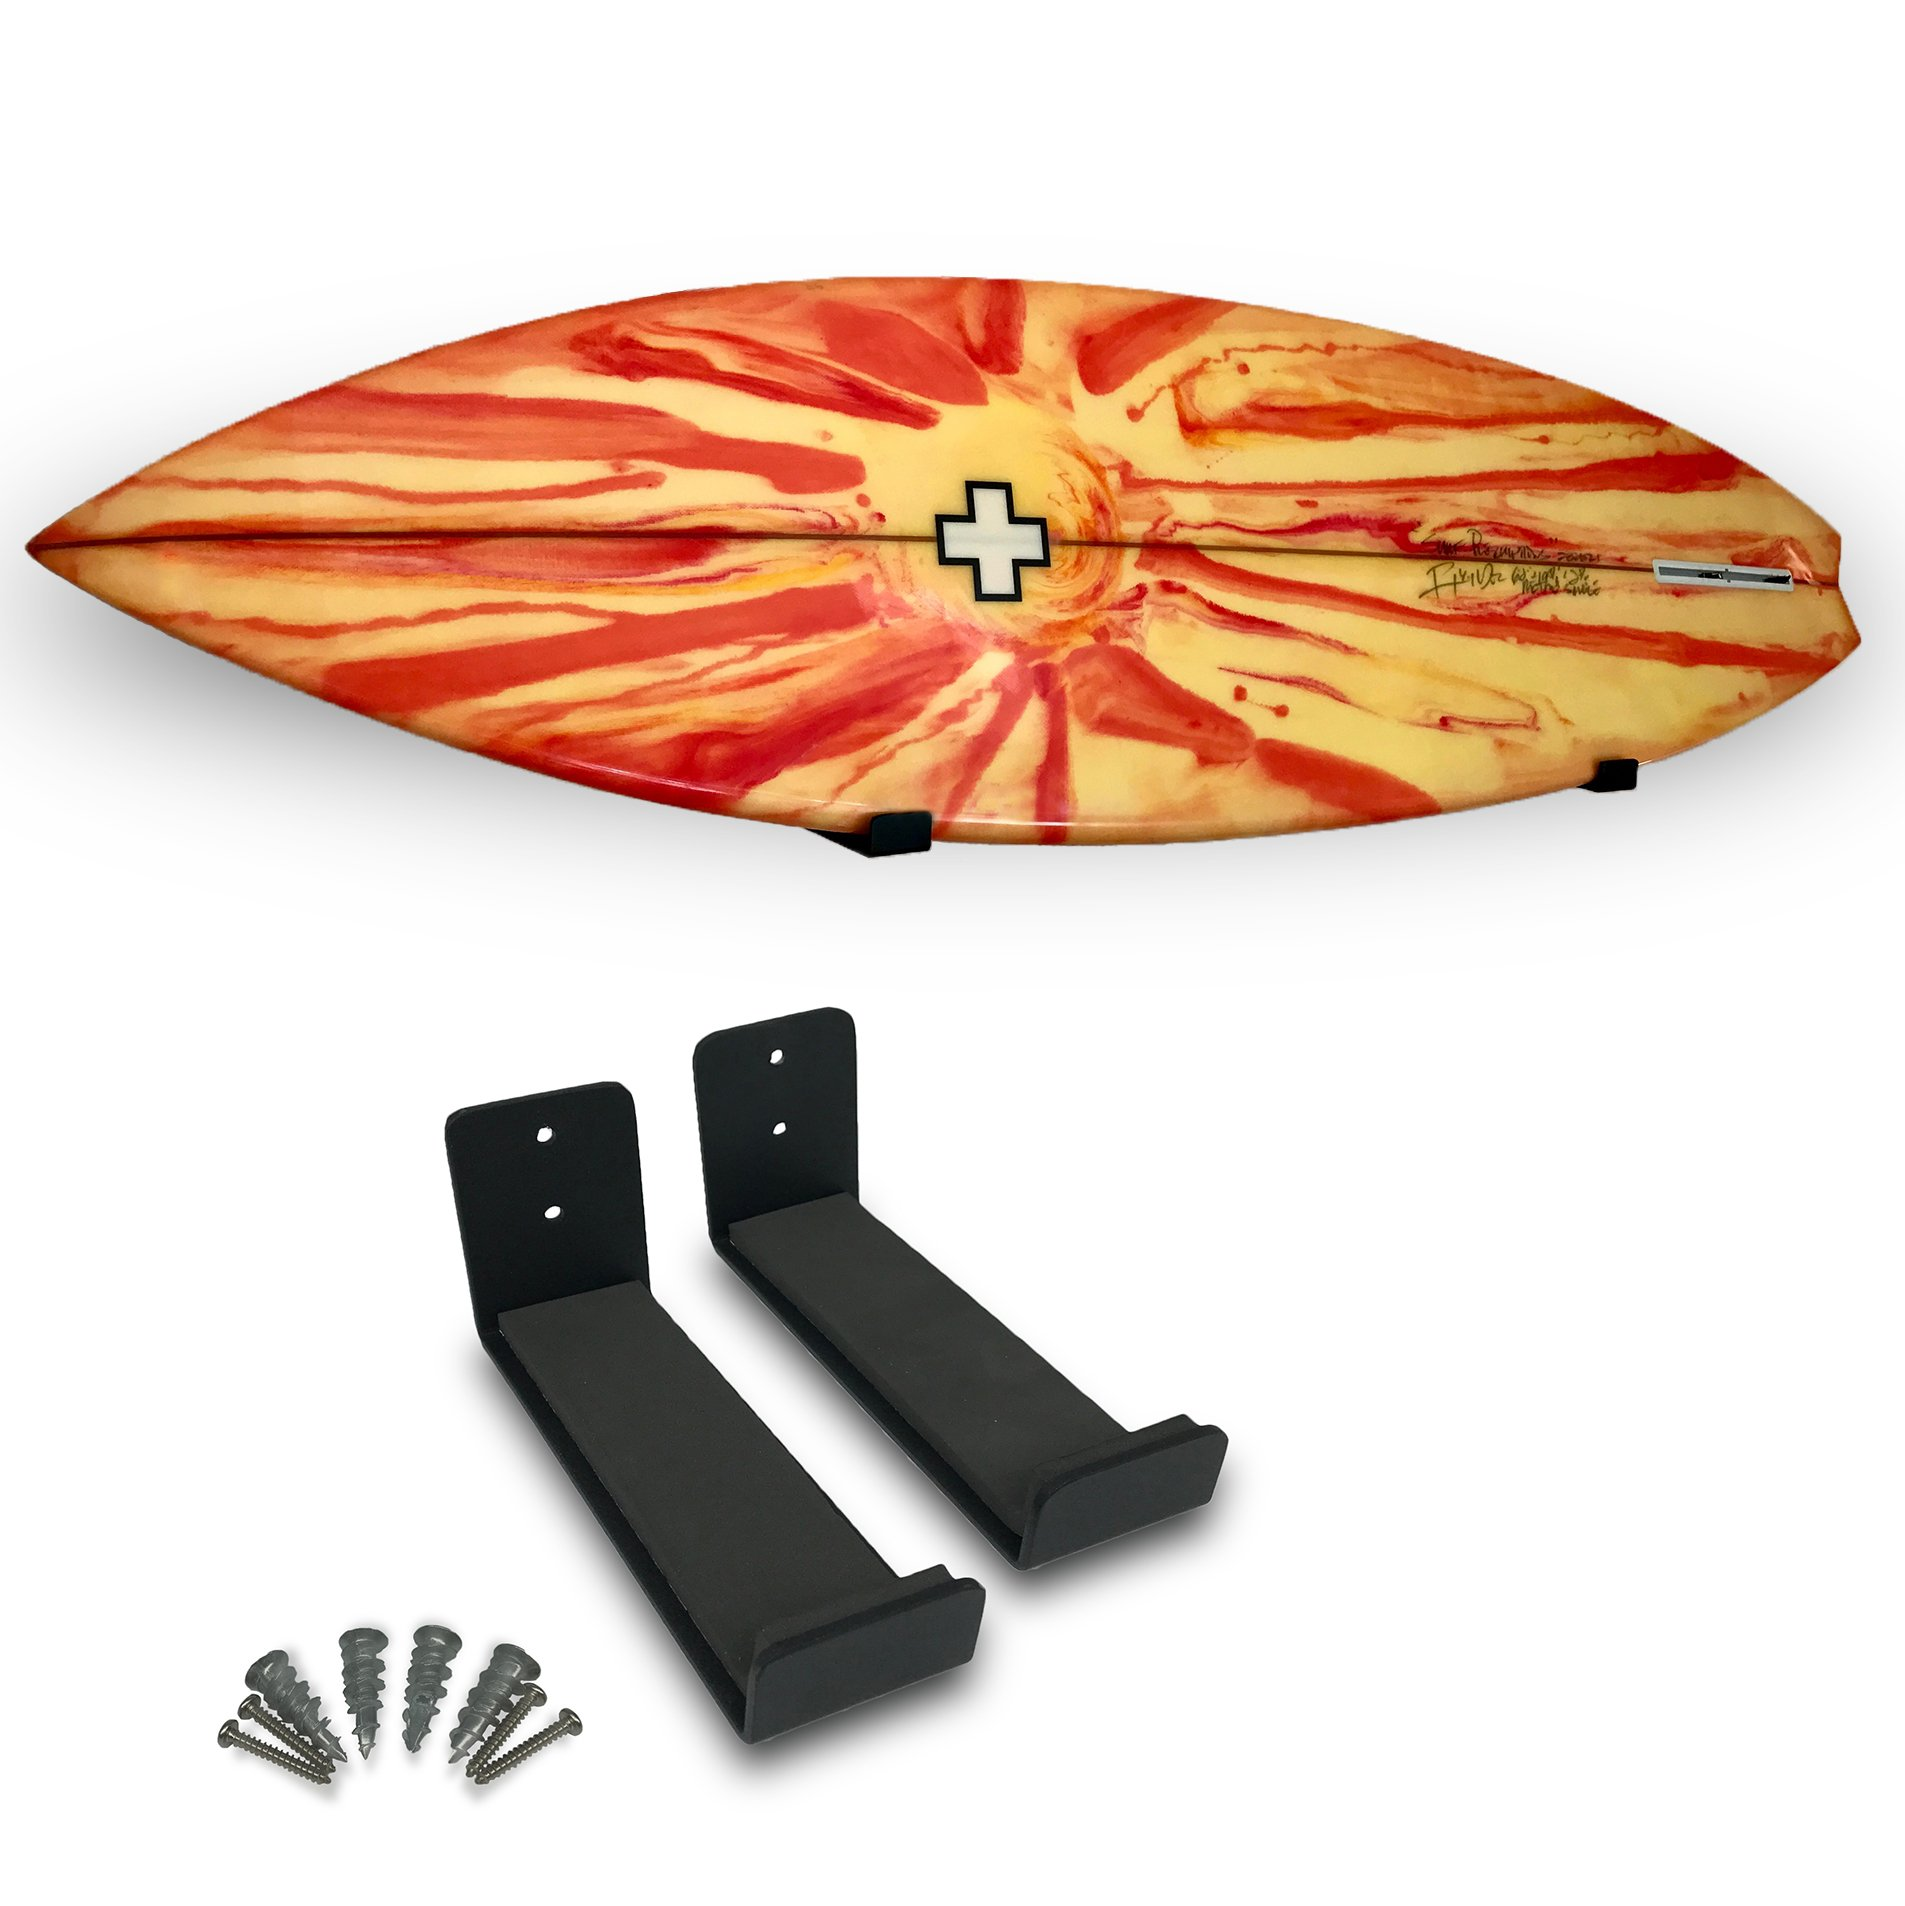 Nice Rack | Simple Surfboard Display Rack - Better Foam & Mounting Hardware Compared to Competing Products!!!